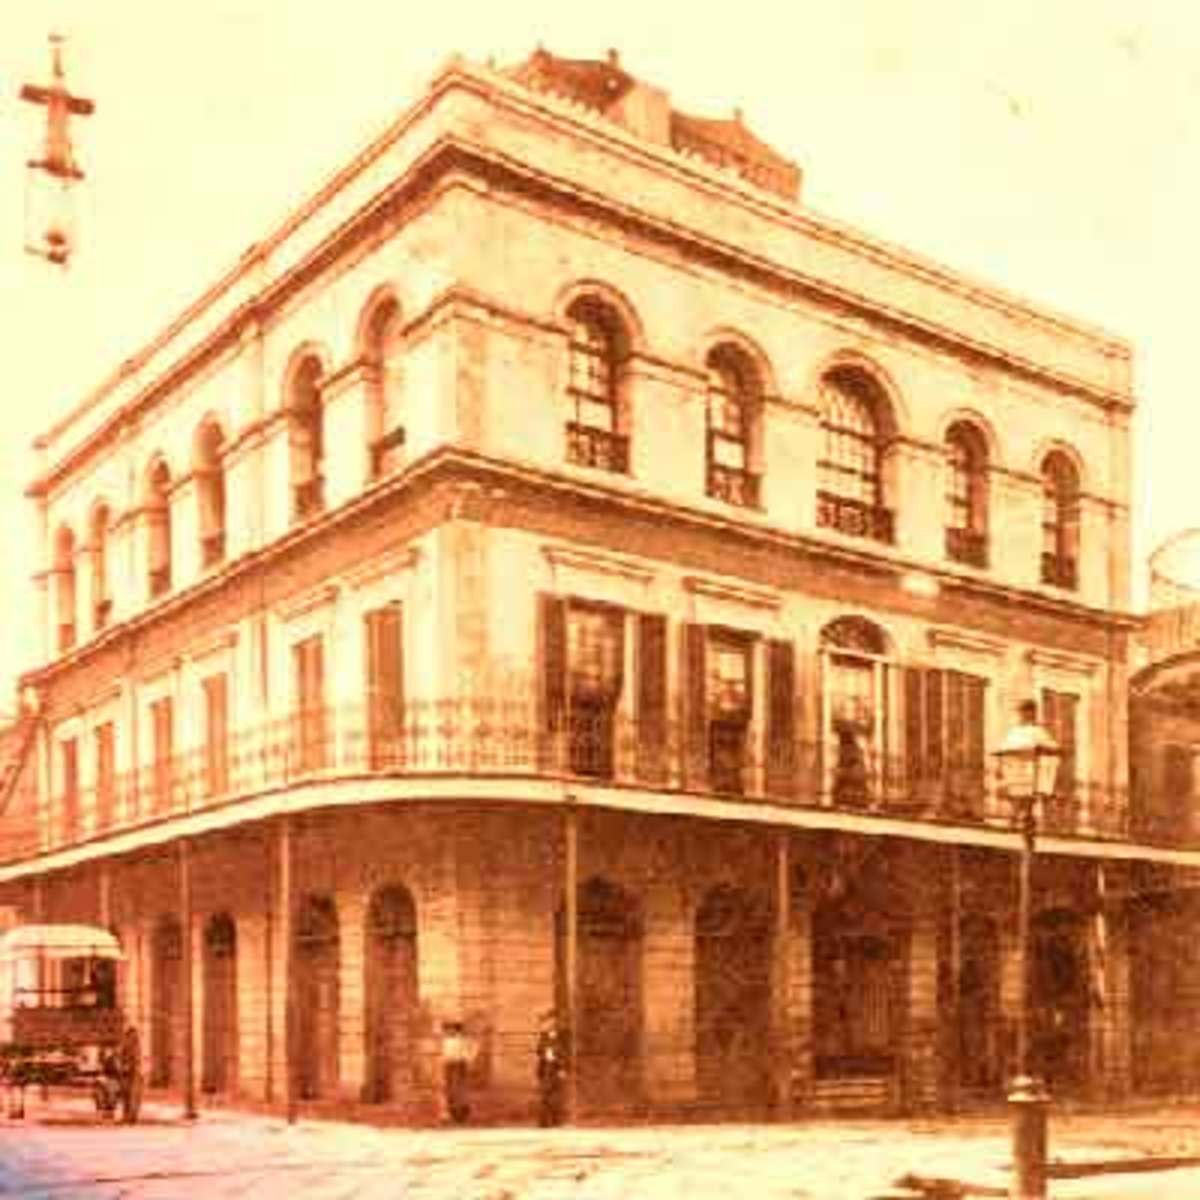 American Ghost Stories Part I: New Orlean's LaLaurie Mansion